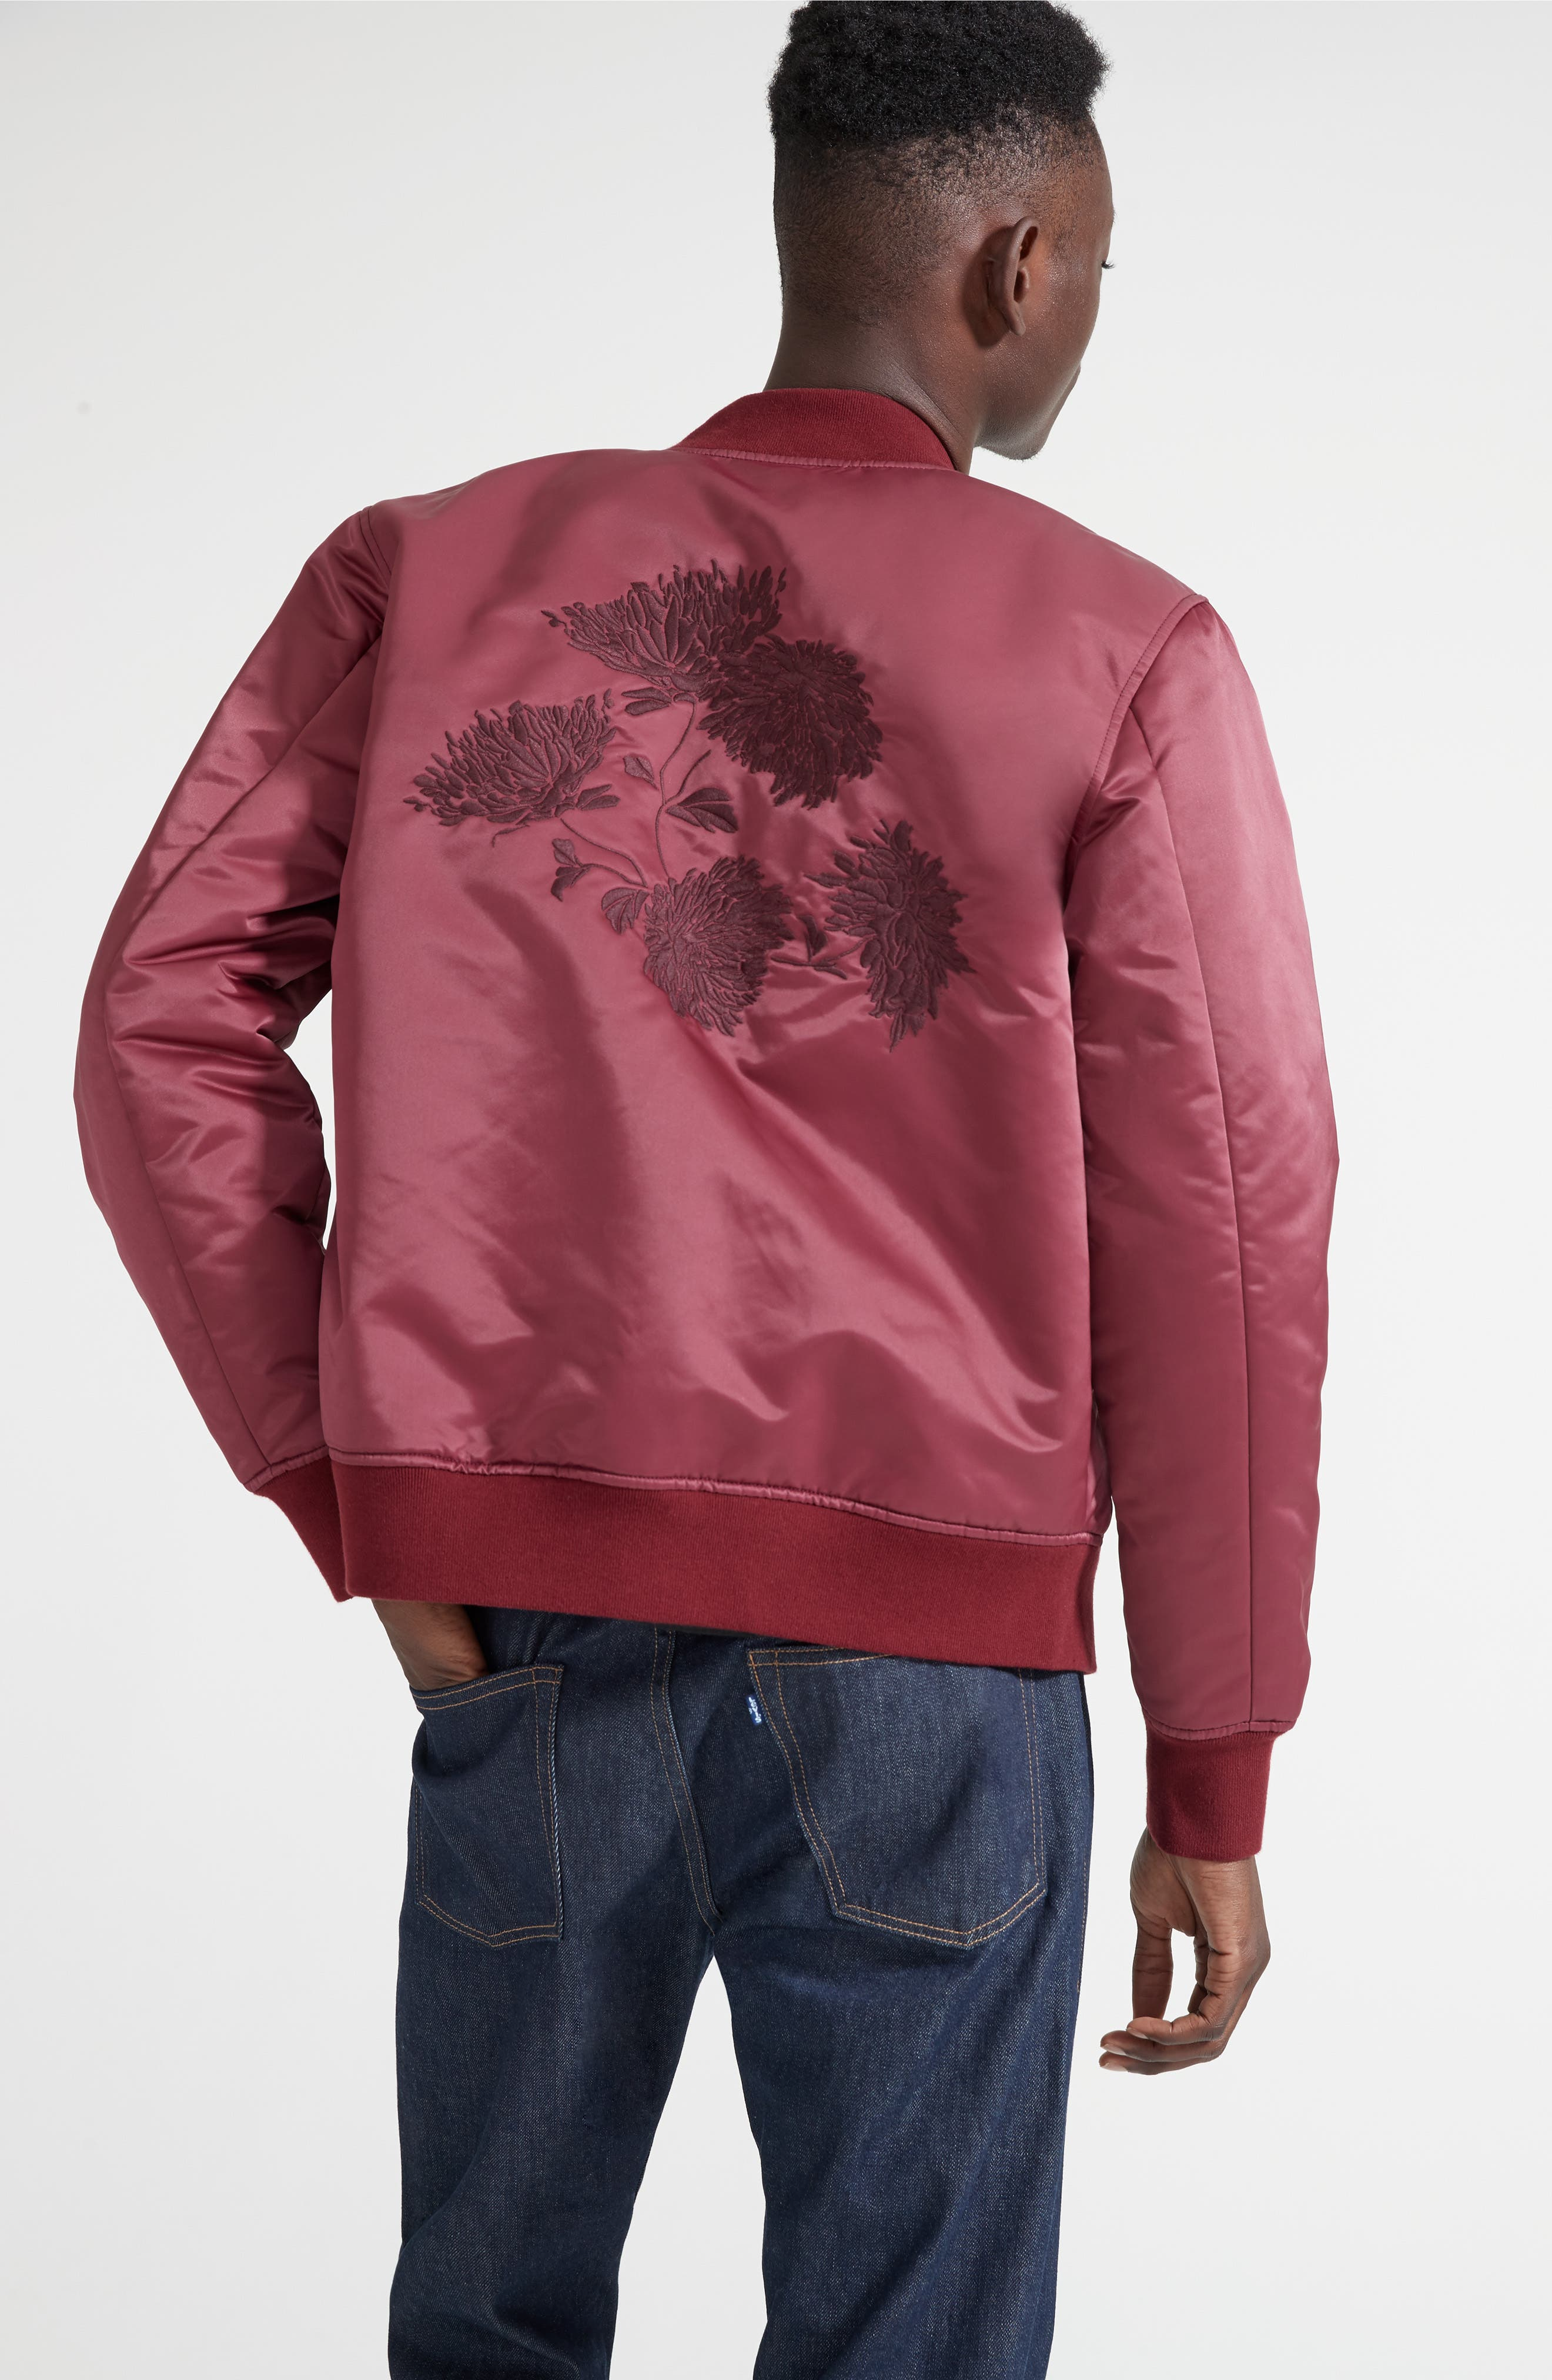 Embroidered Souvenir Bomber Jacket,                             Alternate thumbnail 7, color,                             600